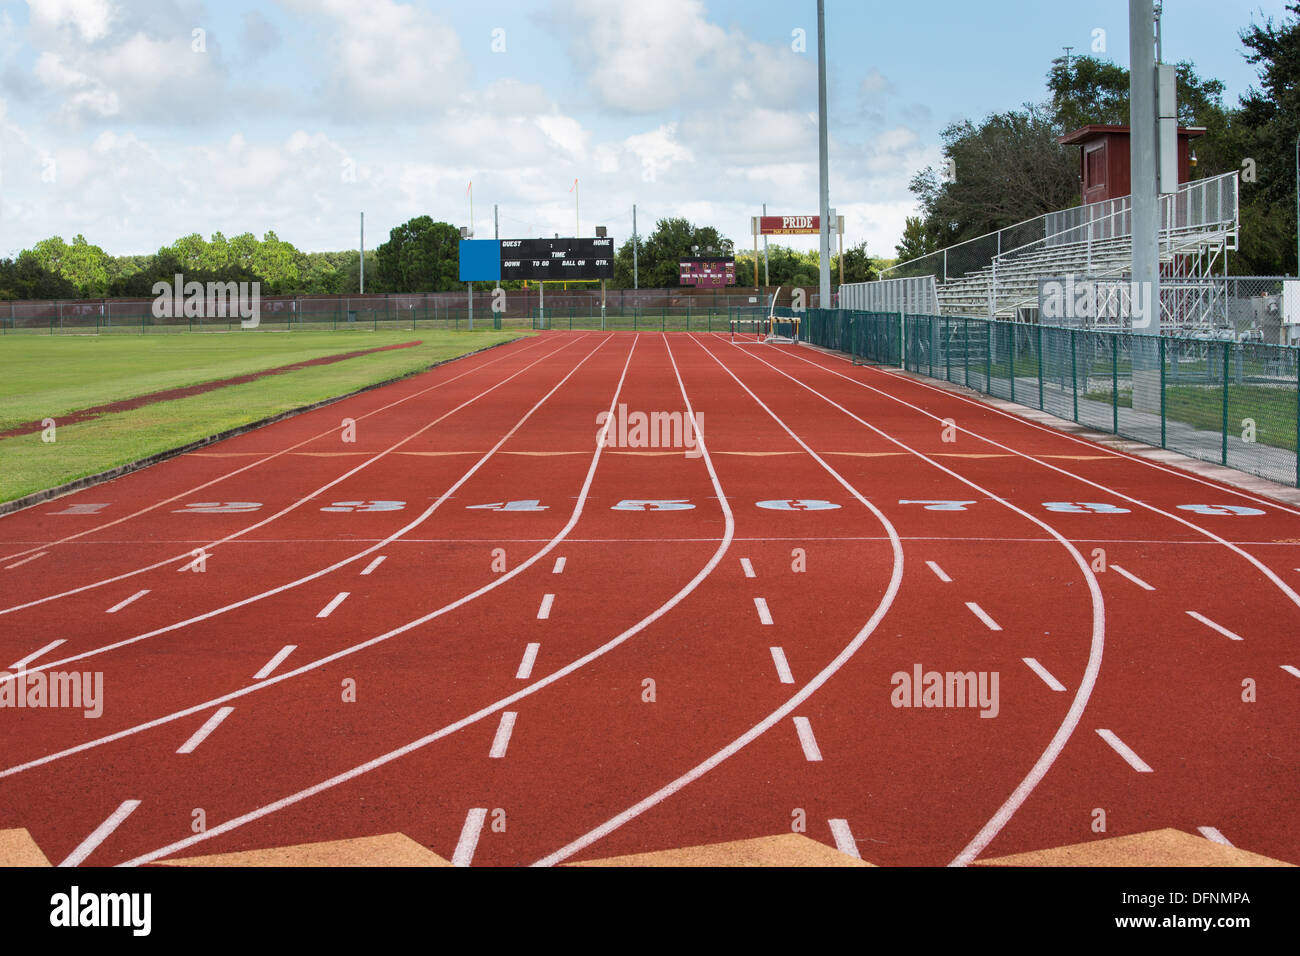 This image shows the nine lanes and the start at the local running track. - Stock Image